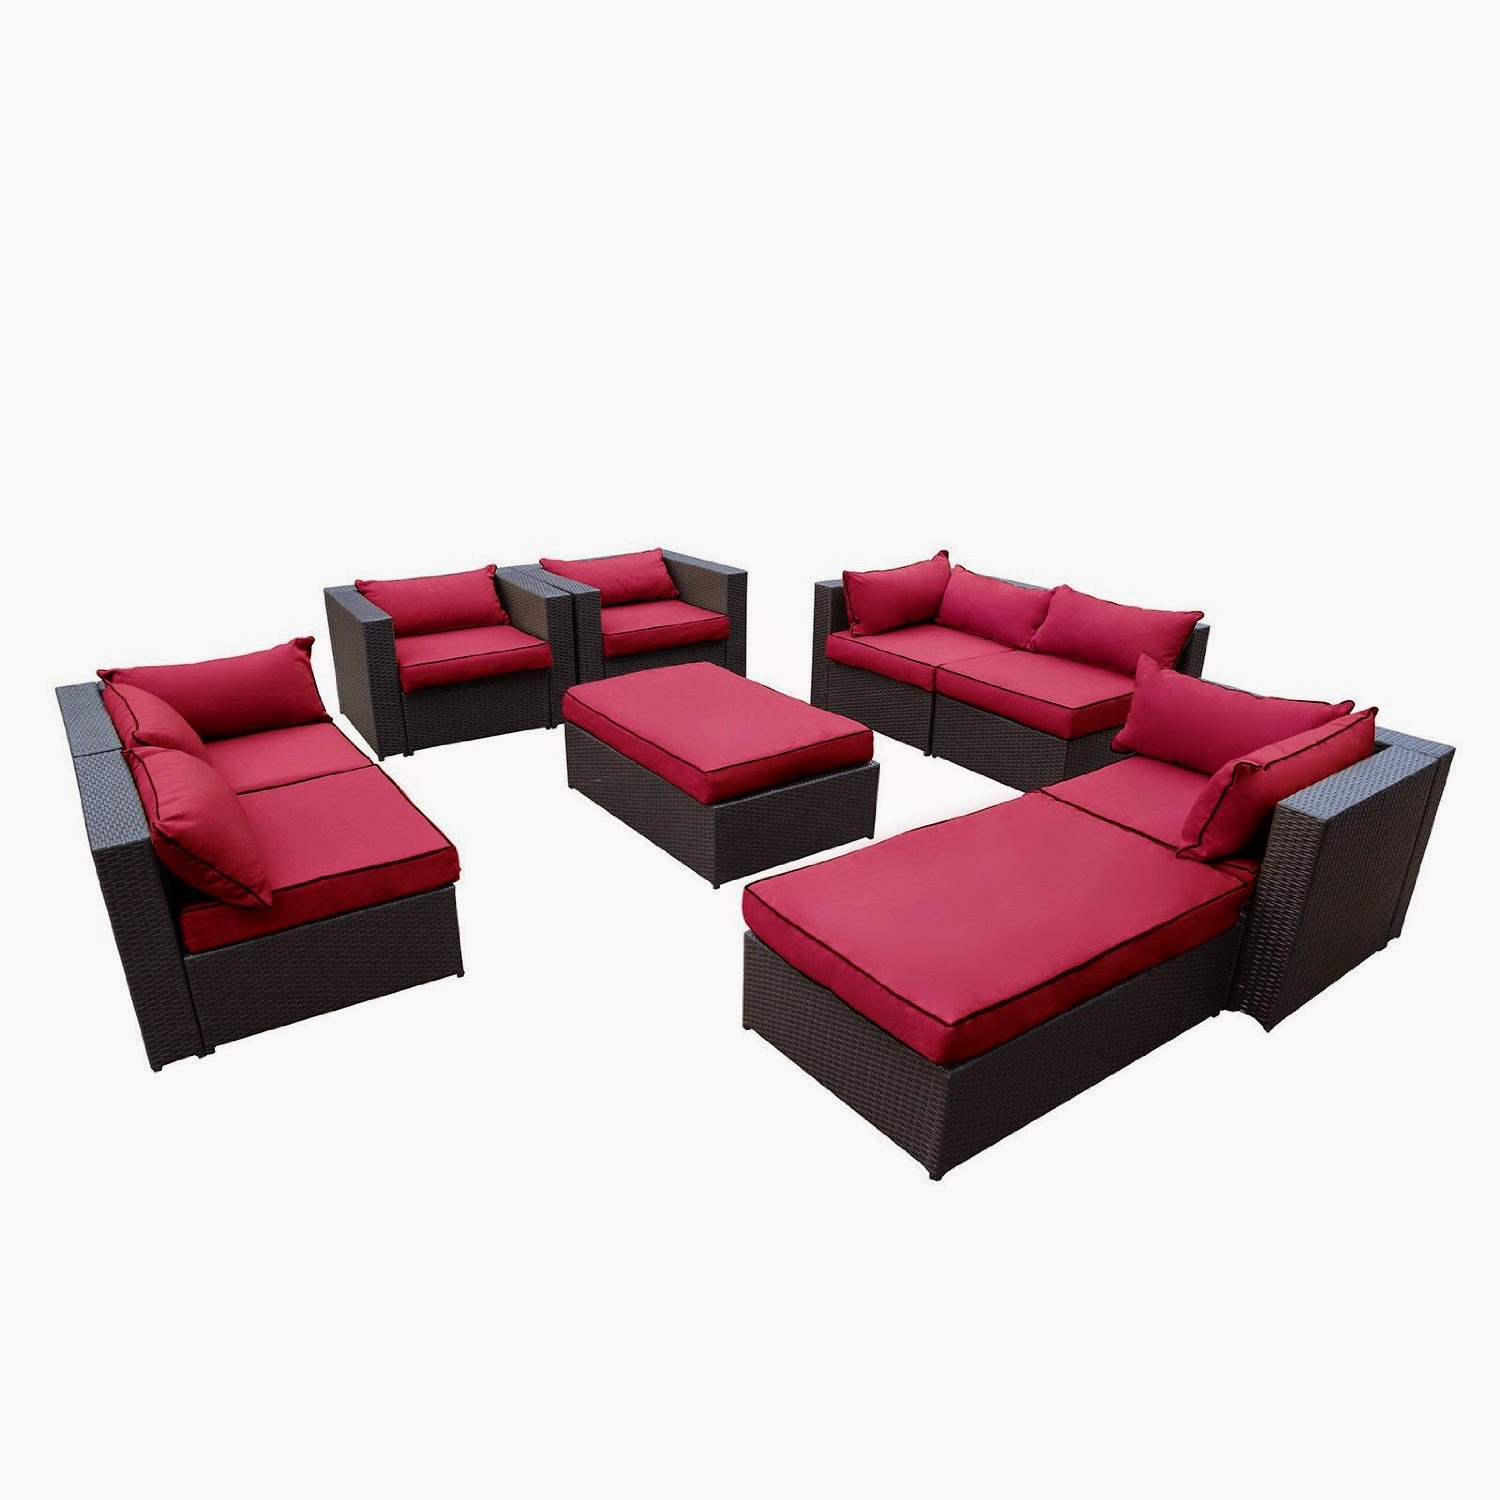 Outdoor Patio Rattan Wicker Furniture Sectional Sofa ...